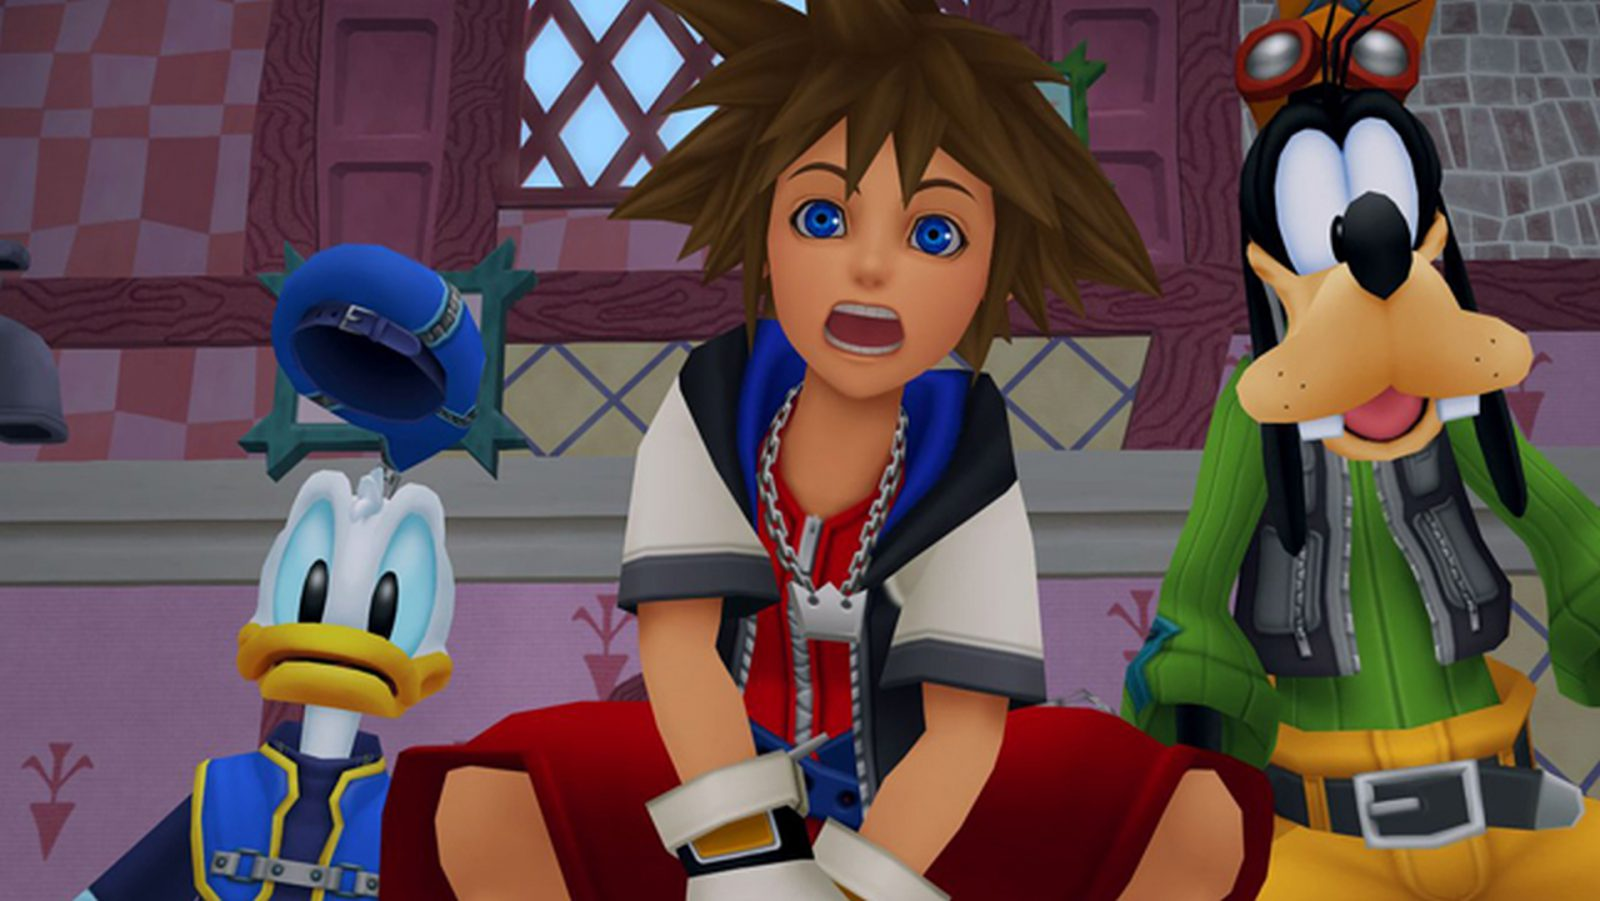 Kingdom-Hearts-1.5-ReMIX-12